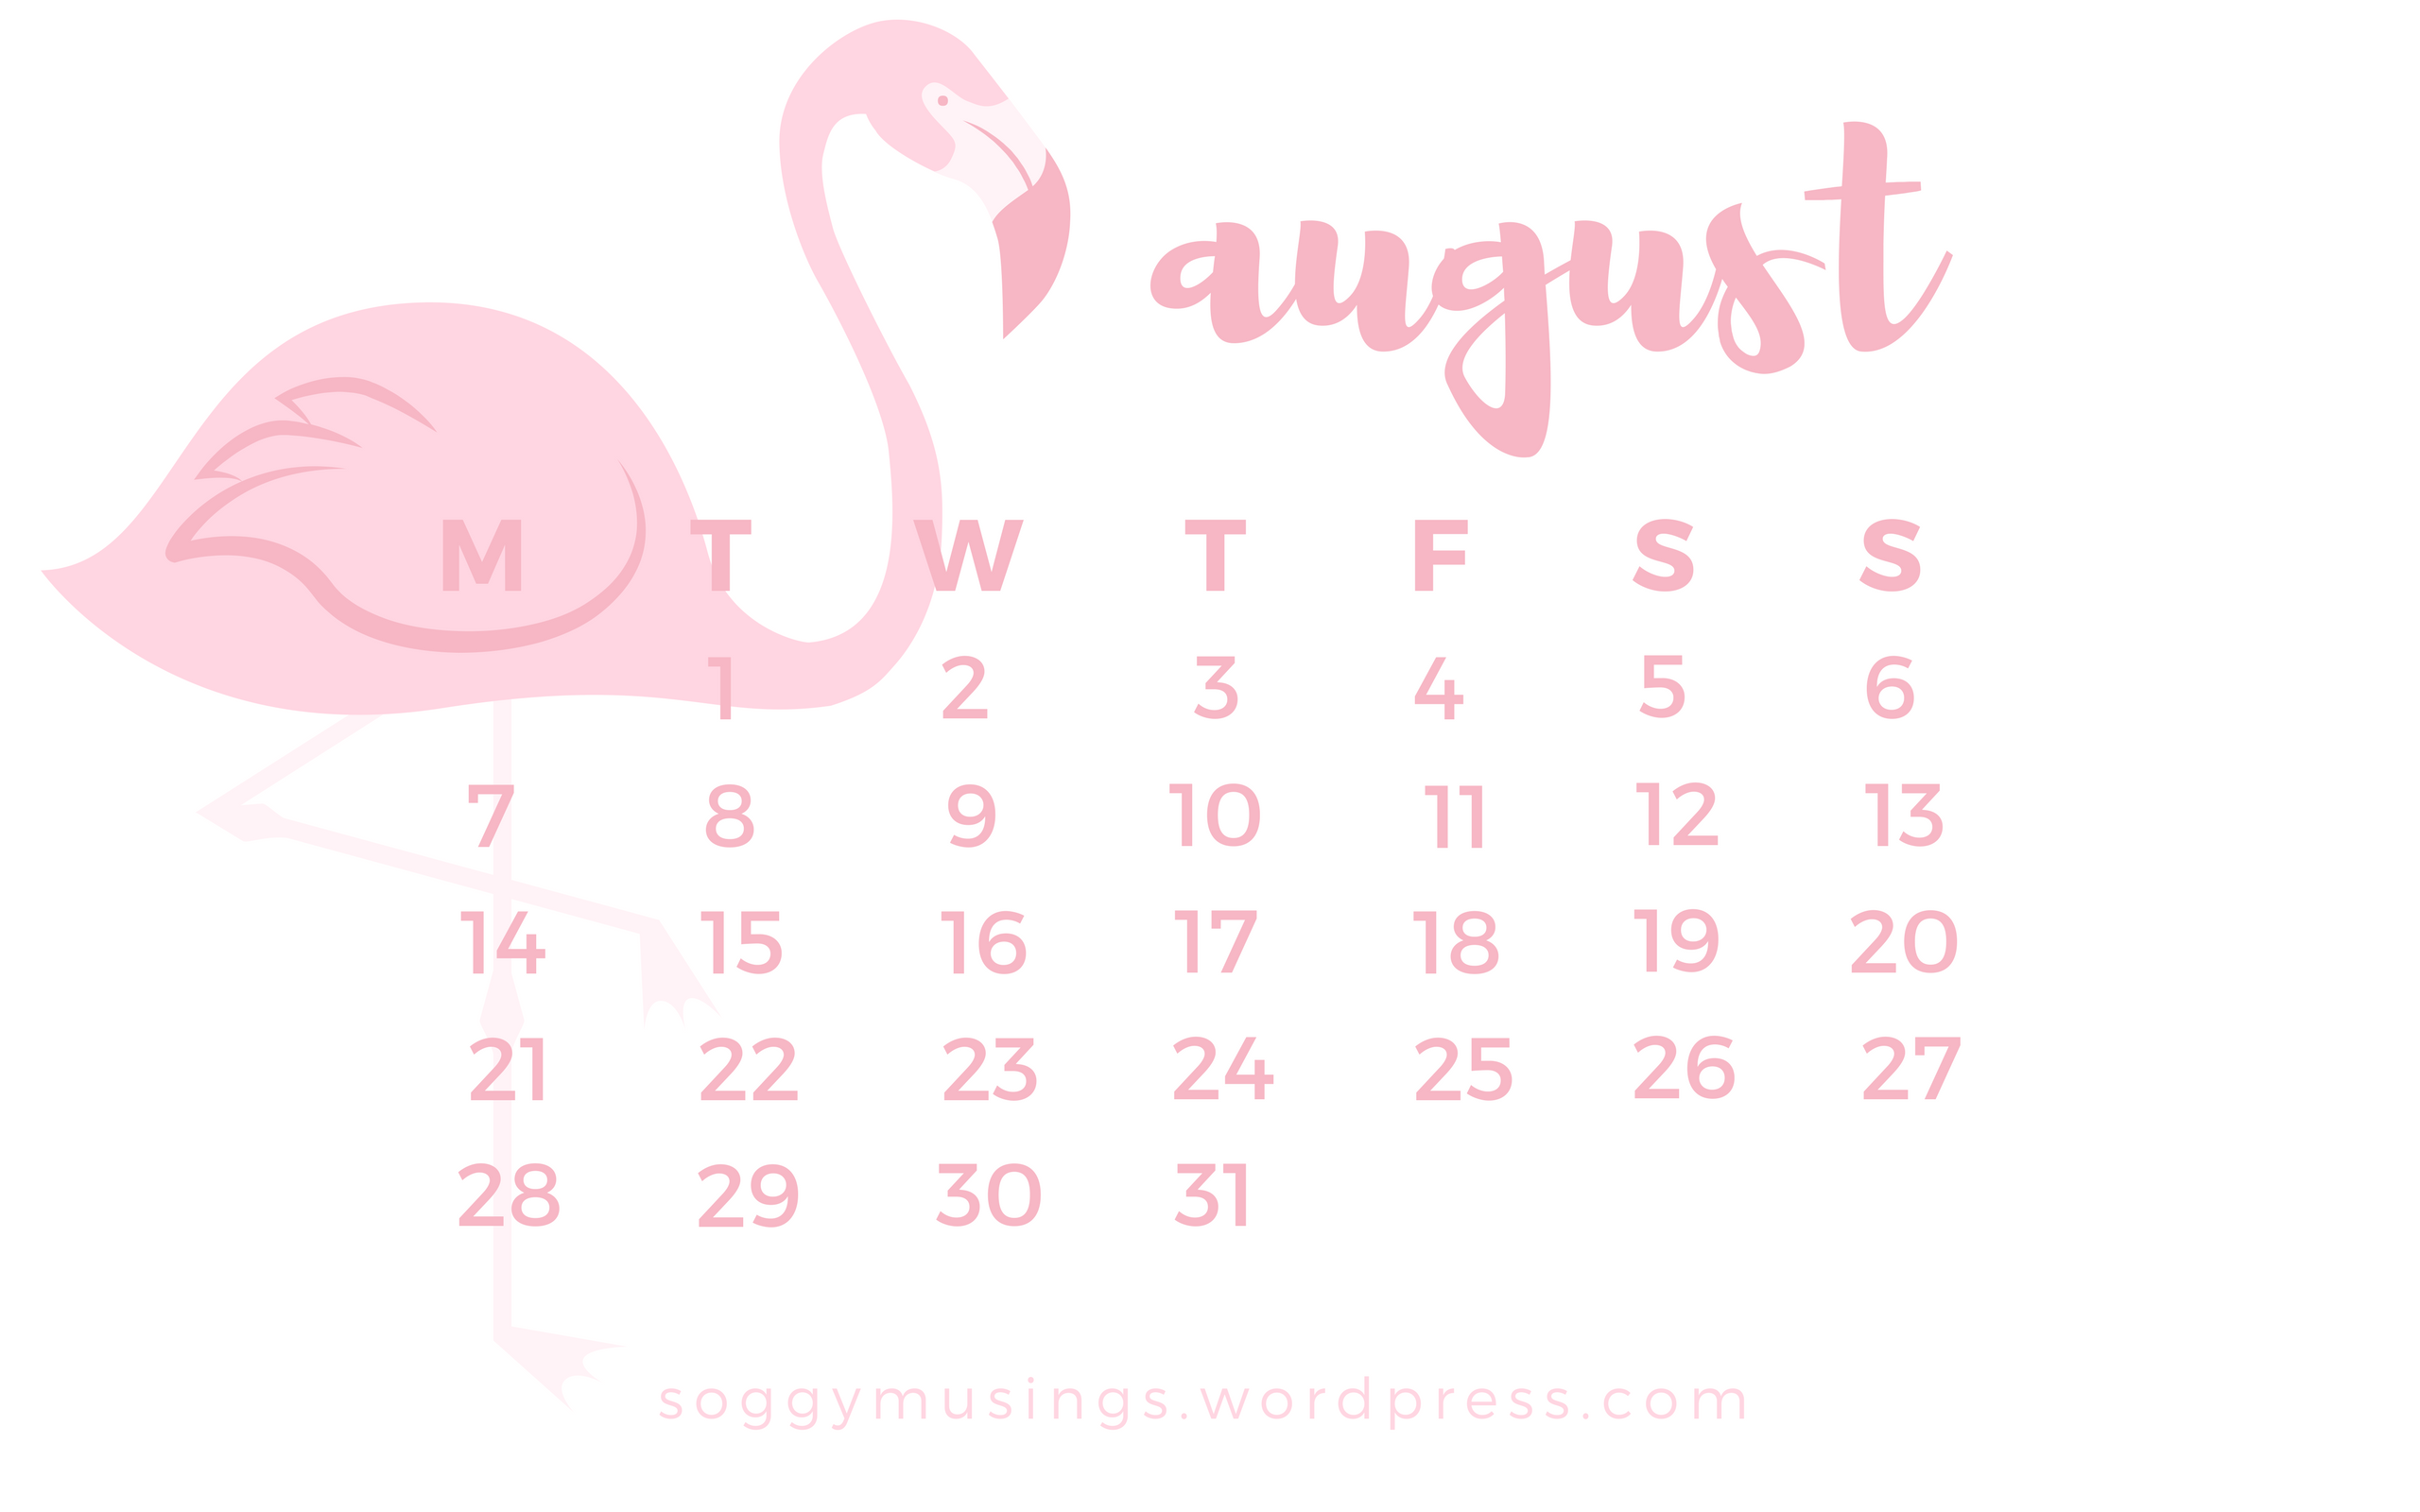 august 2017 wallpaper calendar  u2013 soggy musings